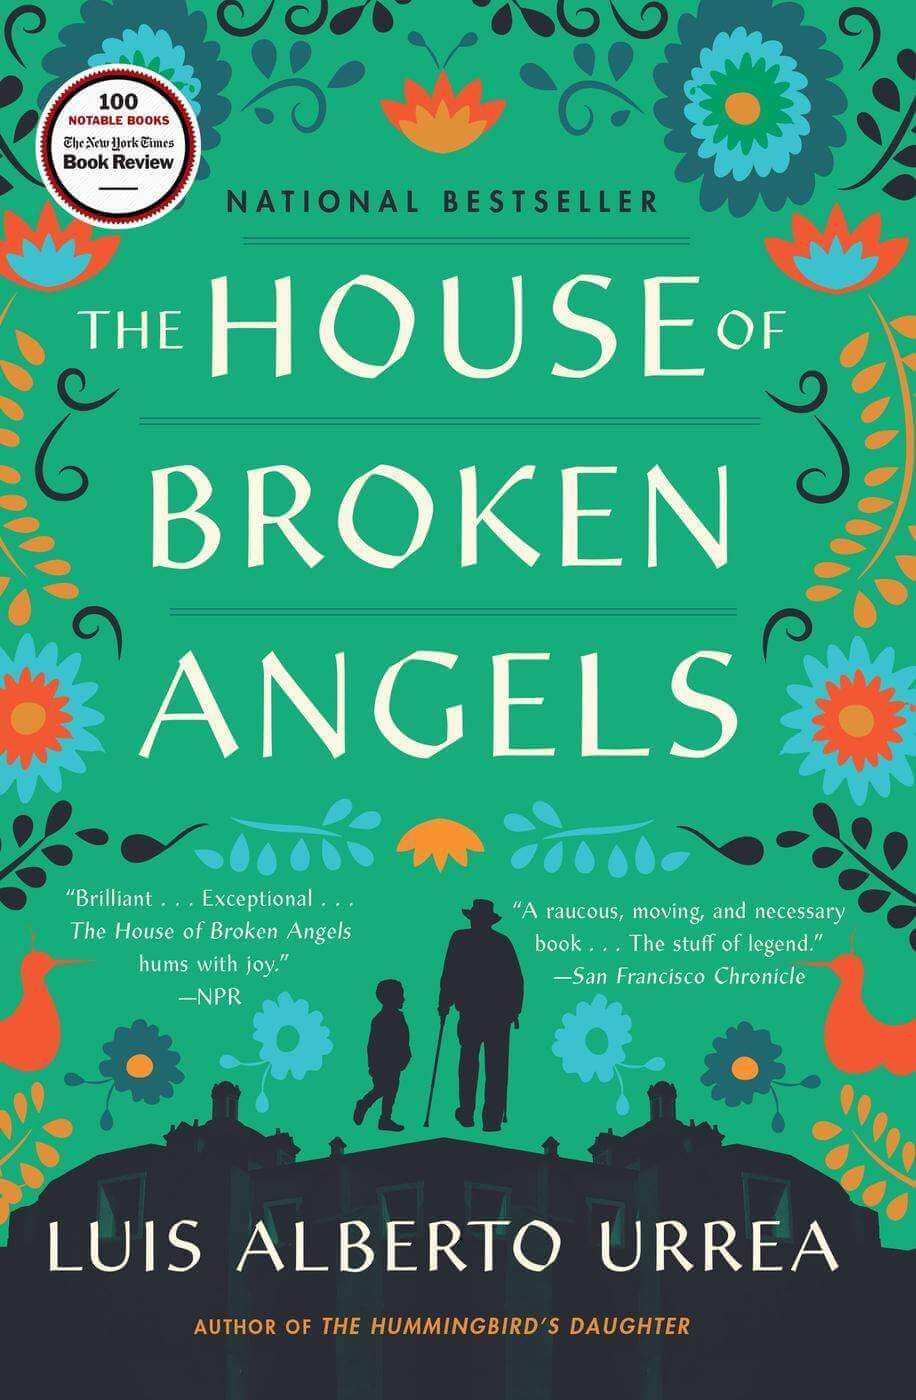 The House of Broken Angels by Luis Alberto Urrea (2018)